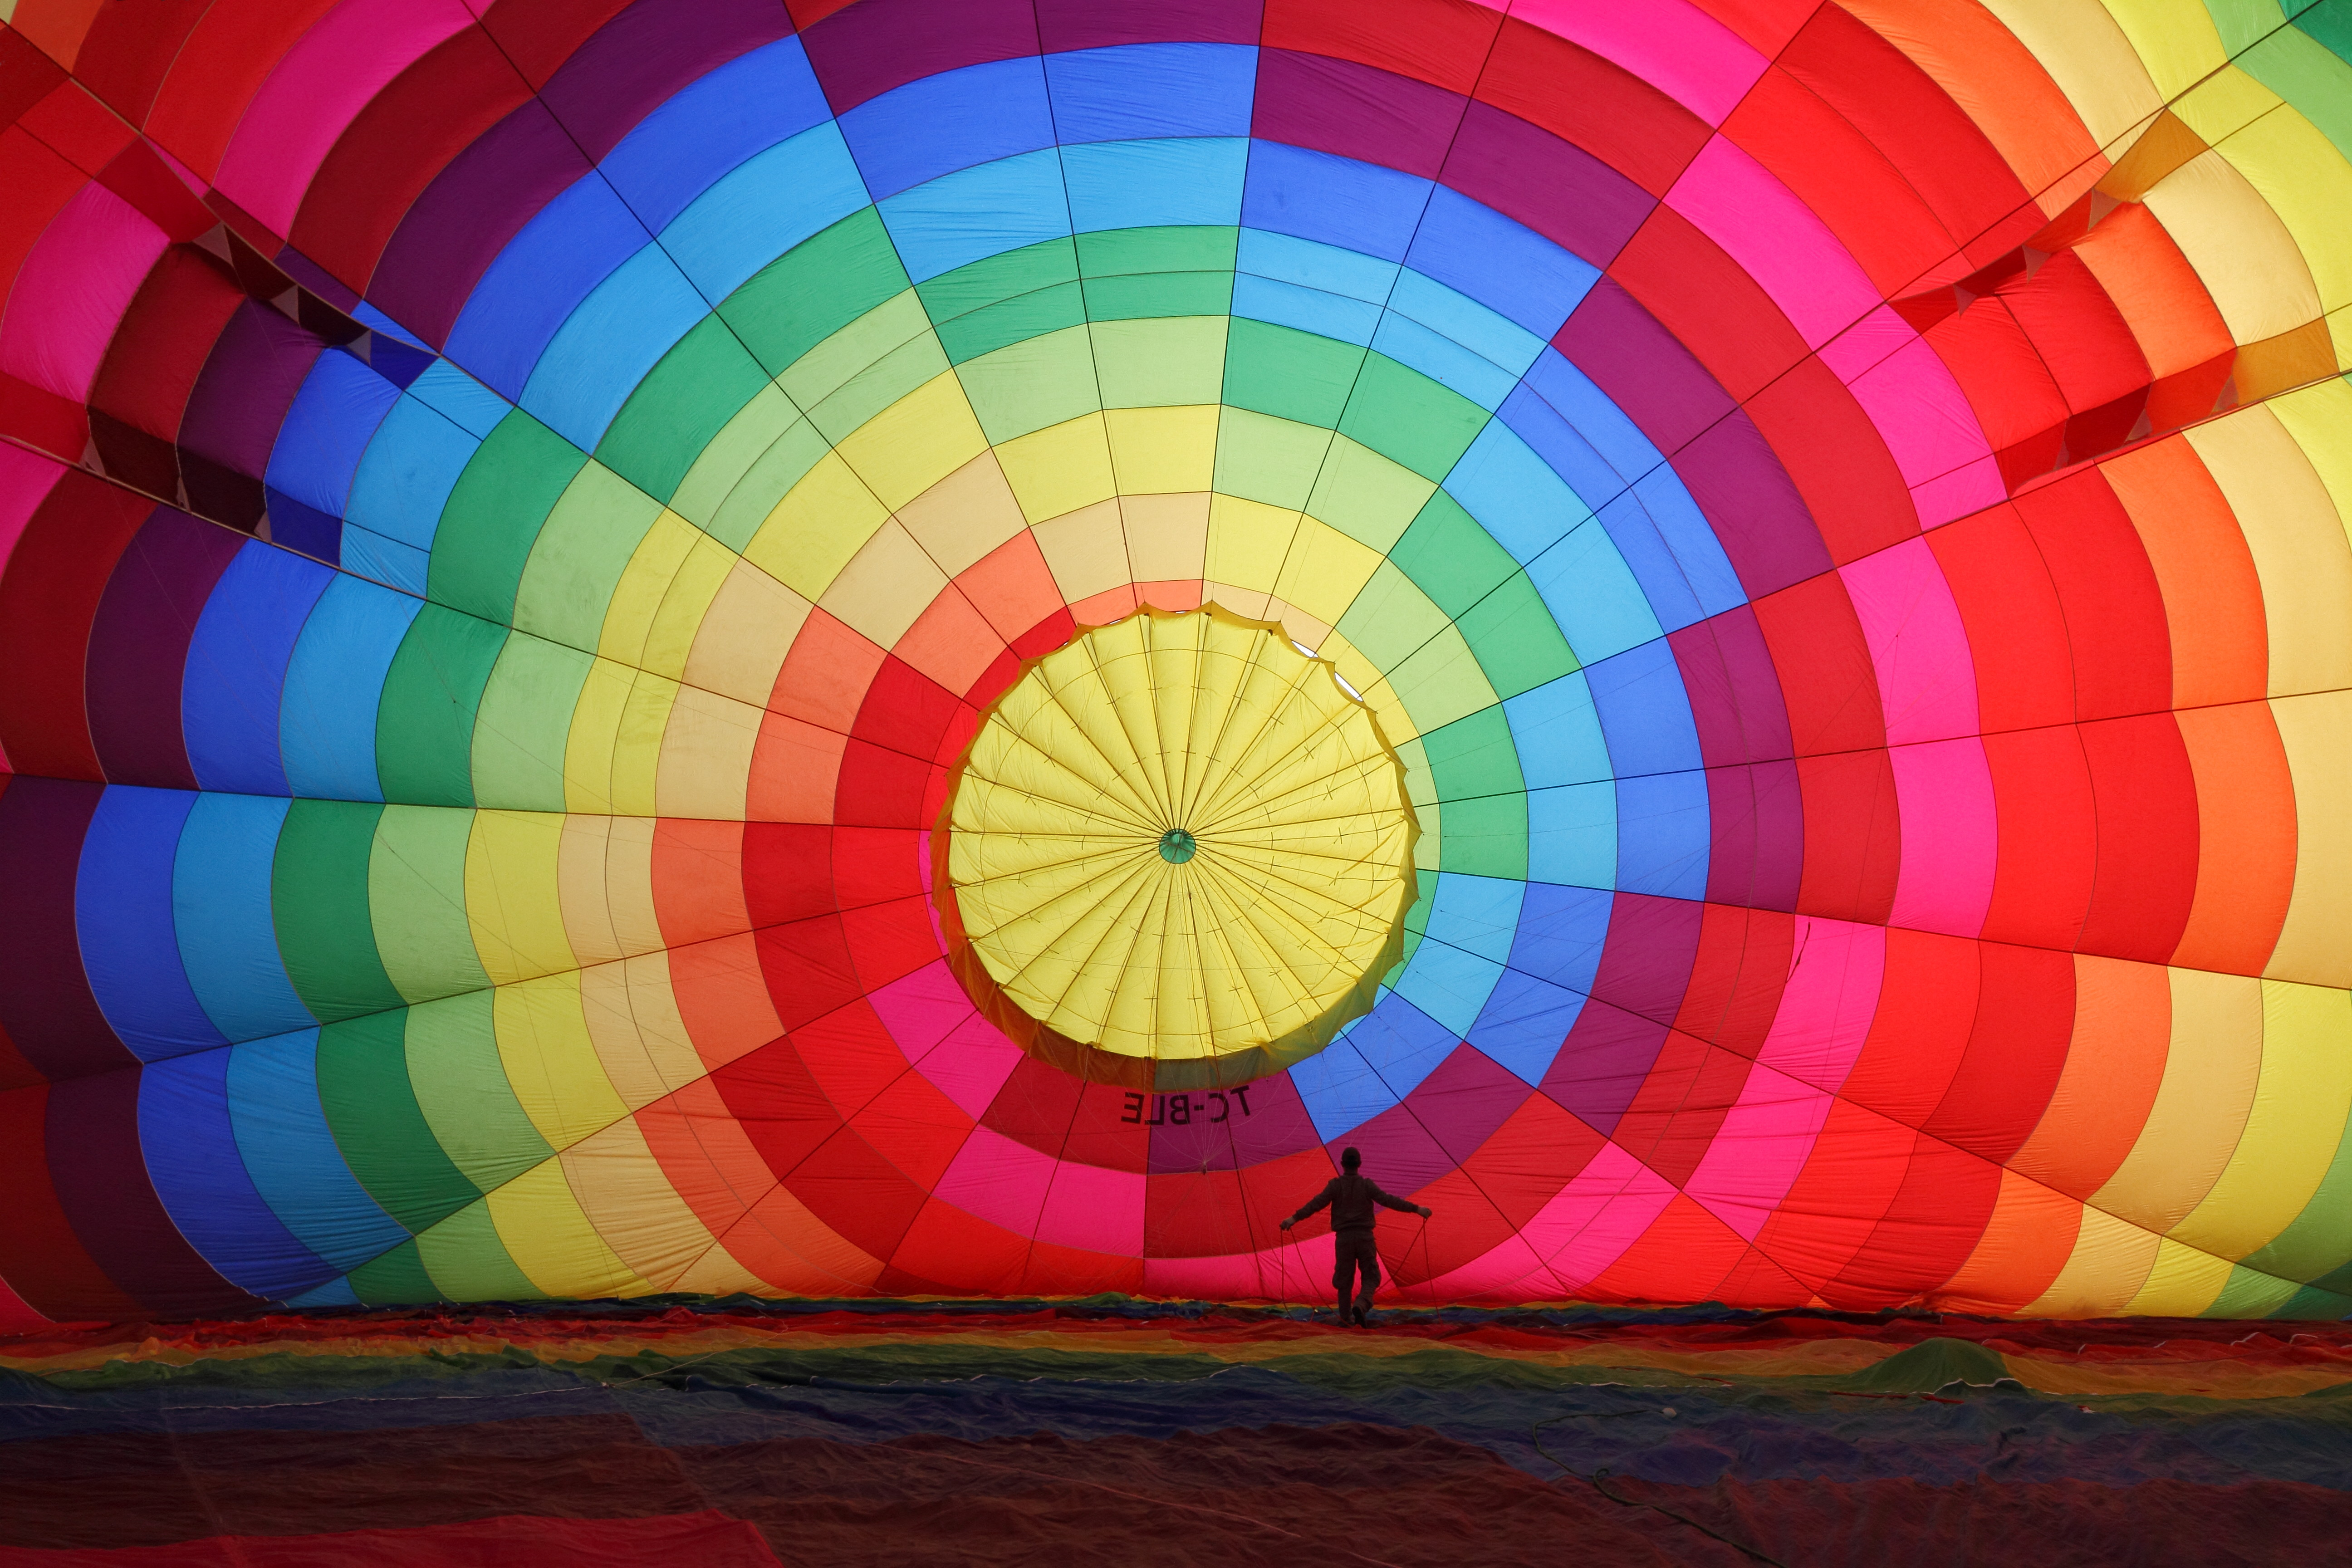 File:Cappadocia Balloon Inflating Wikimedia Commons.JPG ...